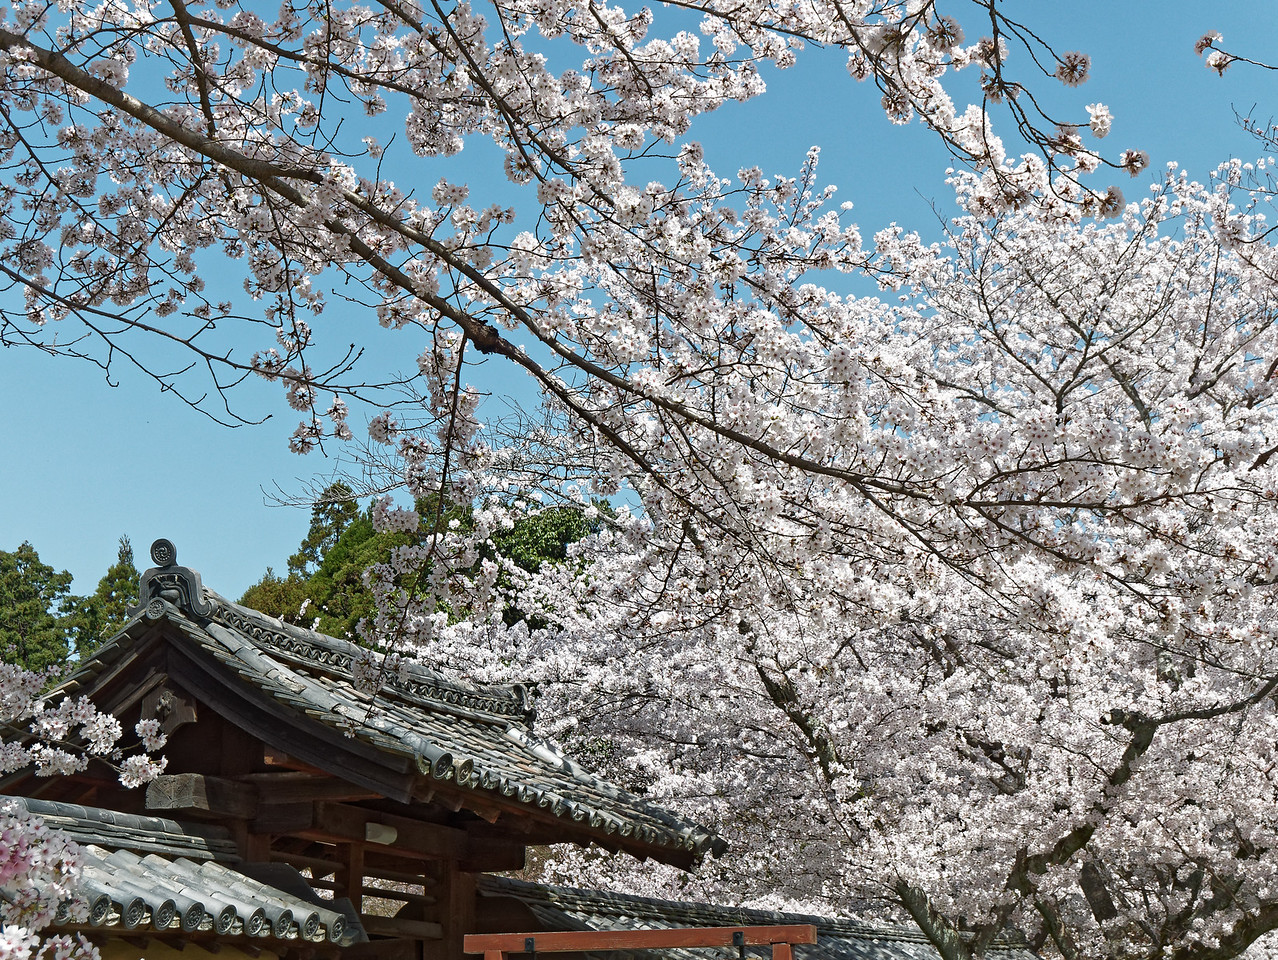 The temple's many cherry blossom trees put on a spectacular display in the spring.